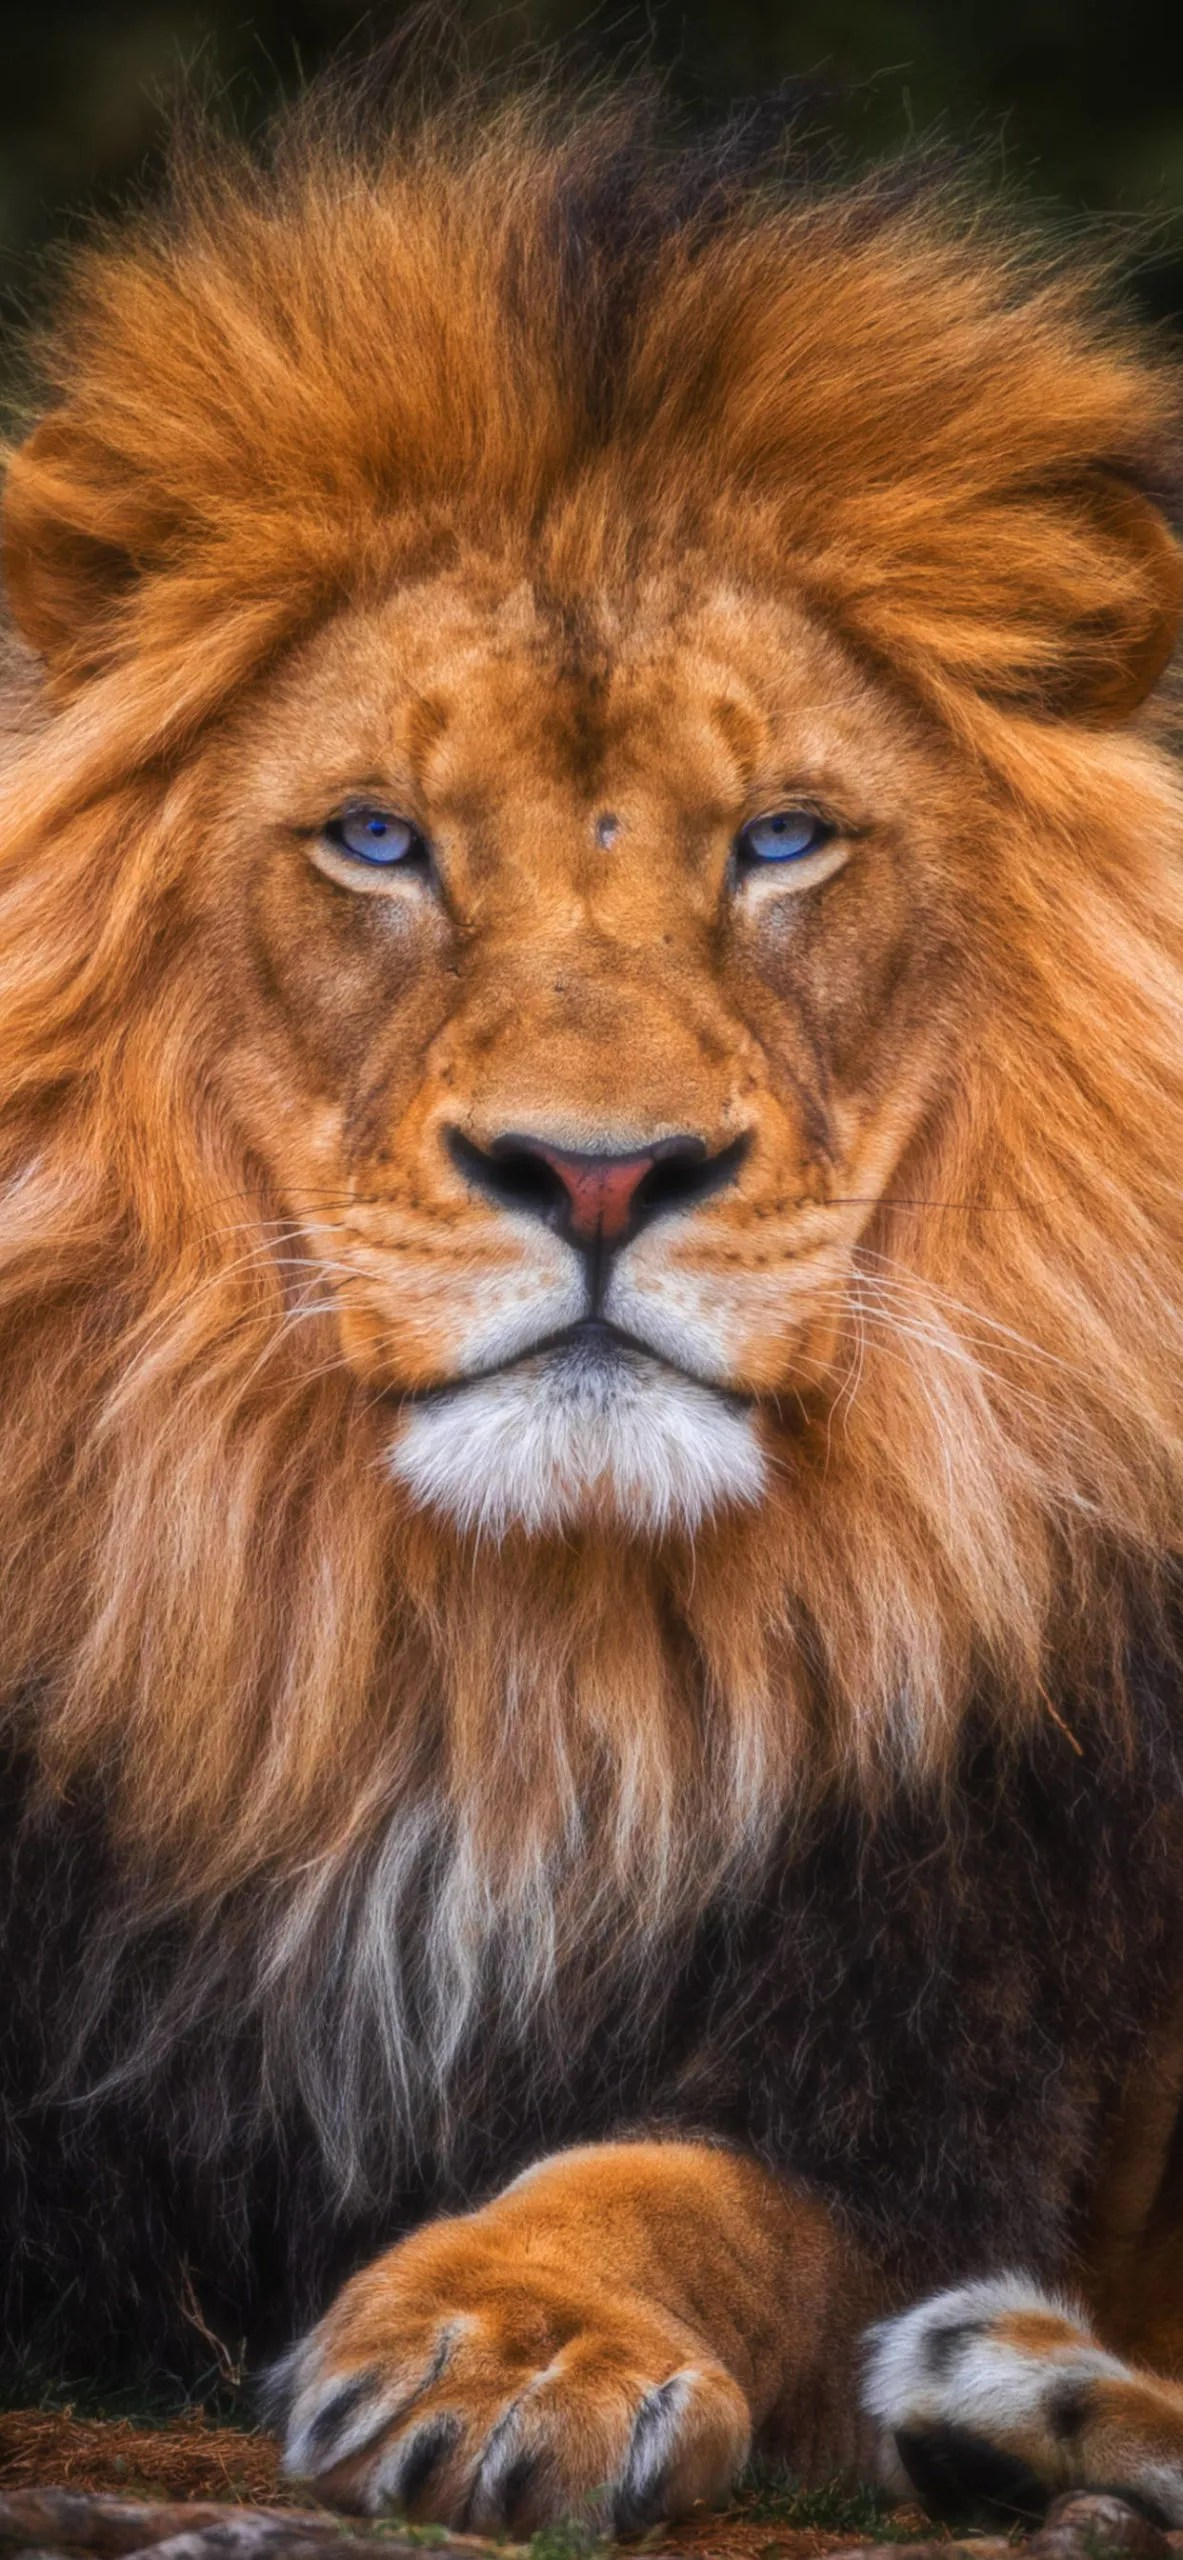 iPhone wallpapers lion eye contact scaled Lion